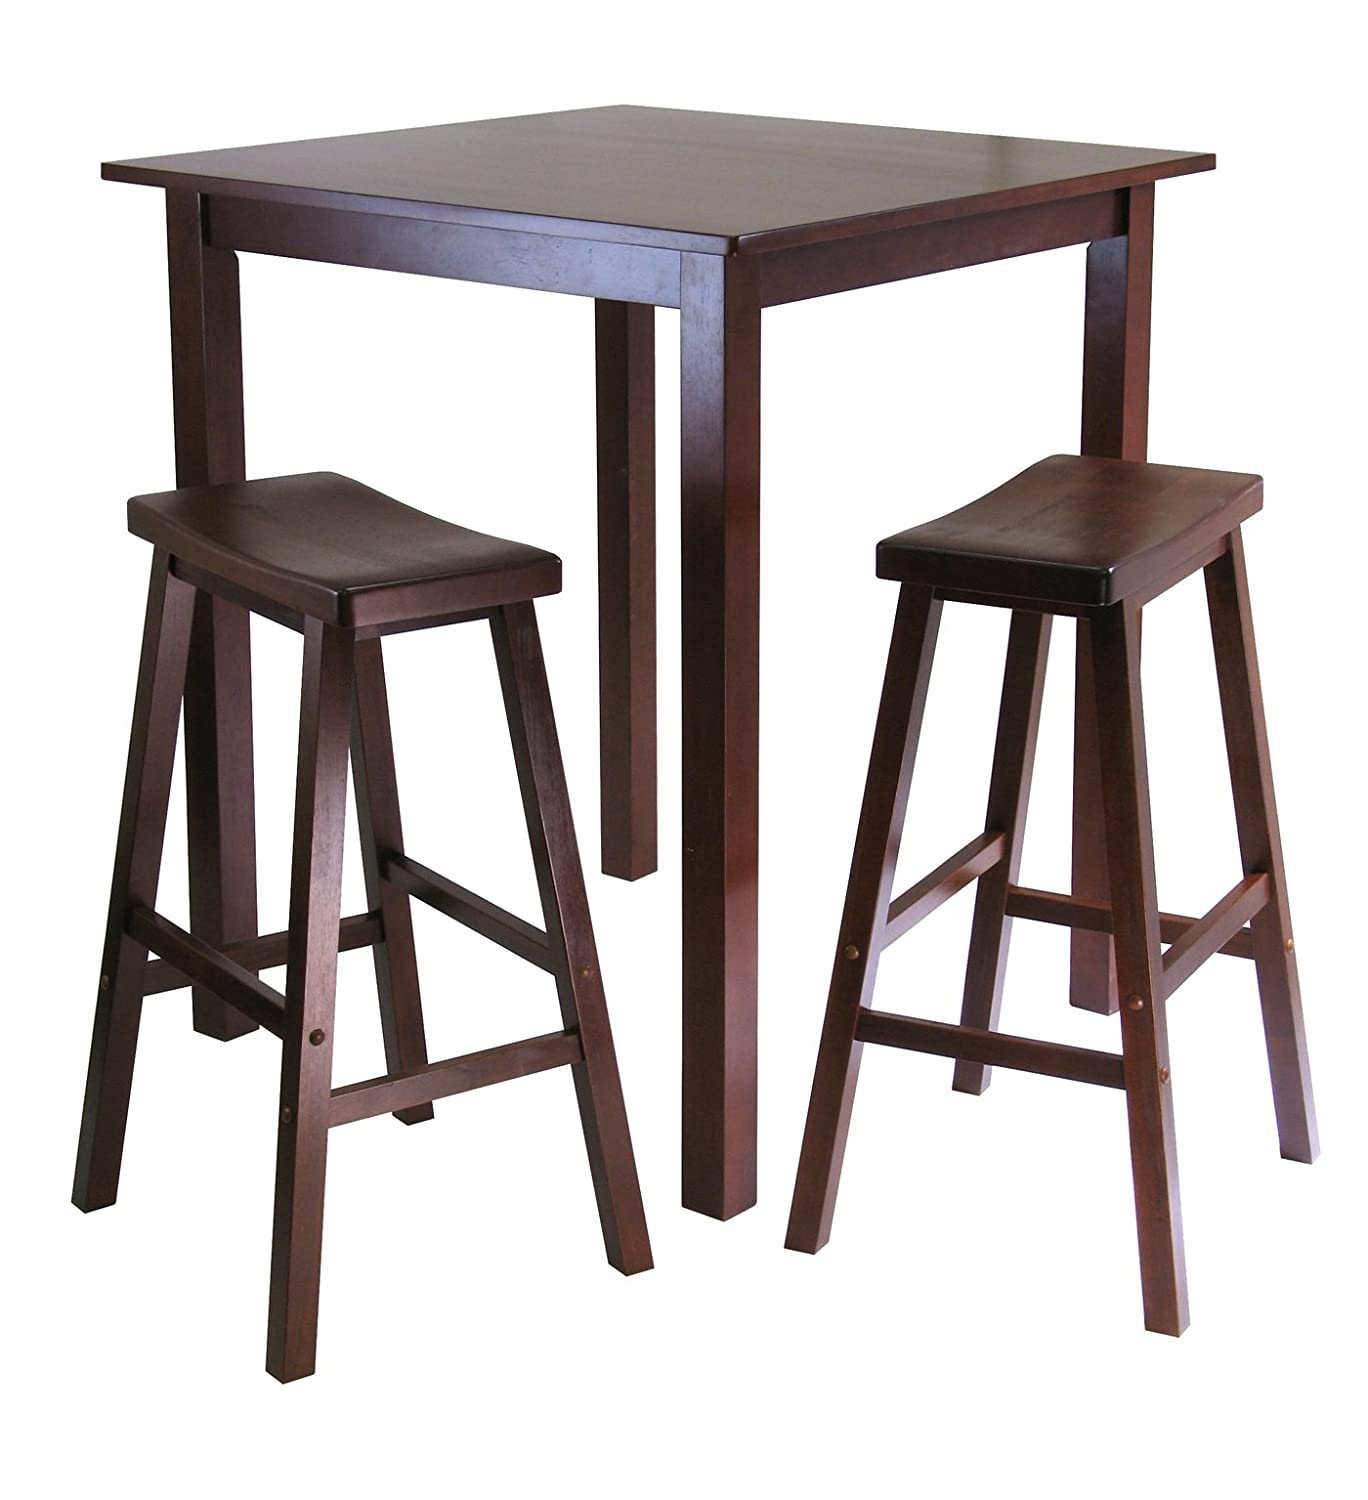 Amazon Winsome s Parkland 3 Piece Square High Pub Table Set in